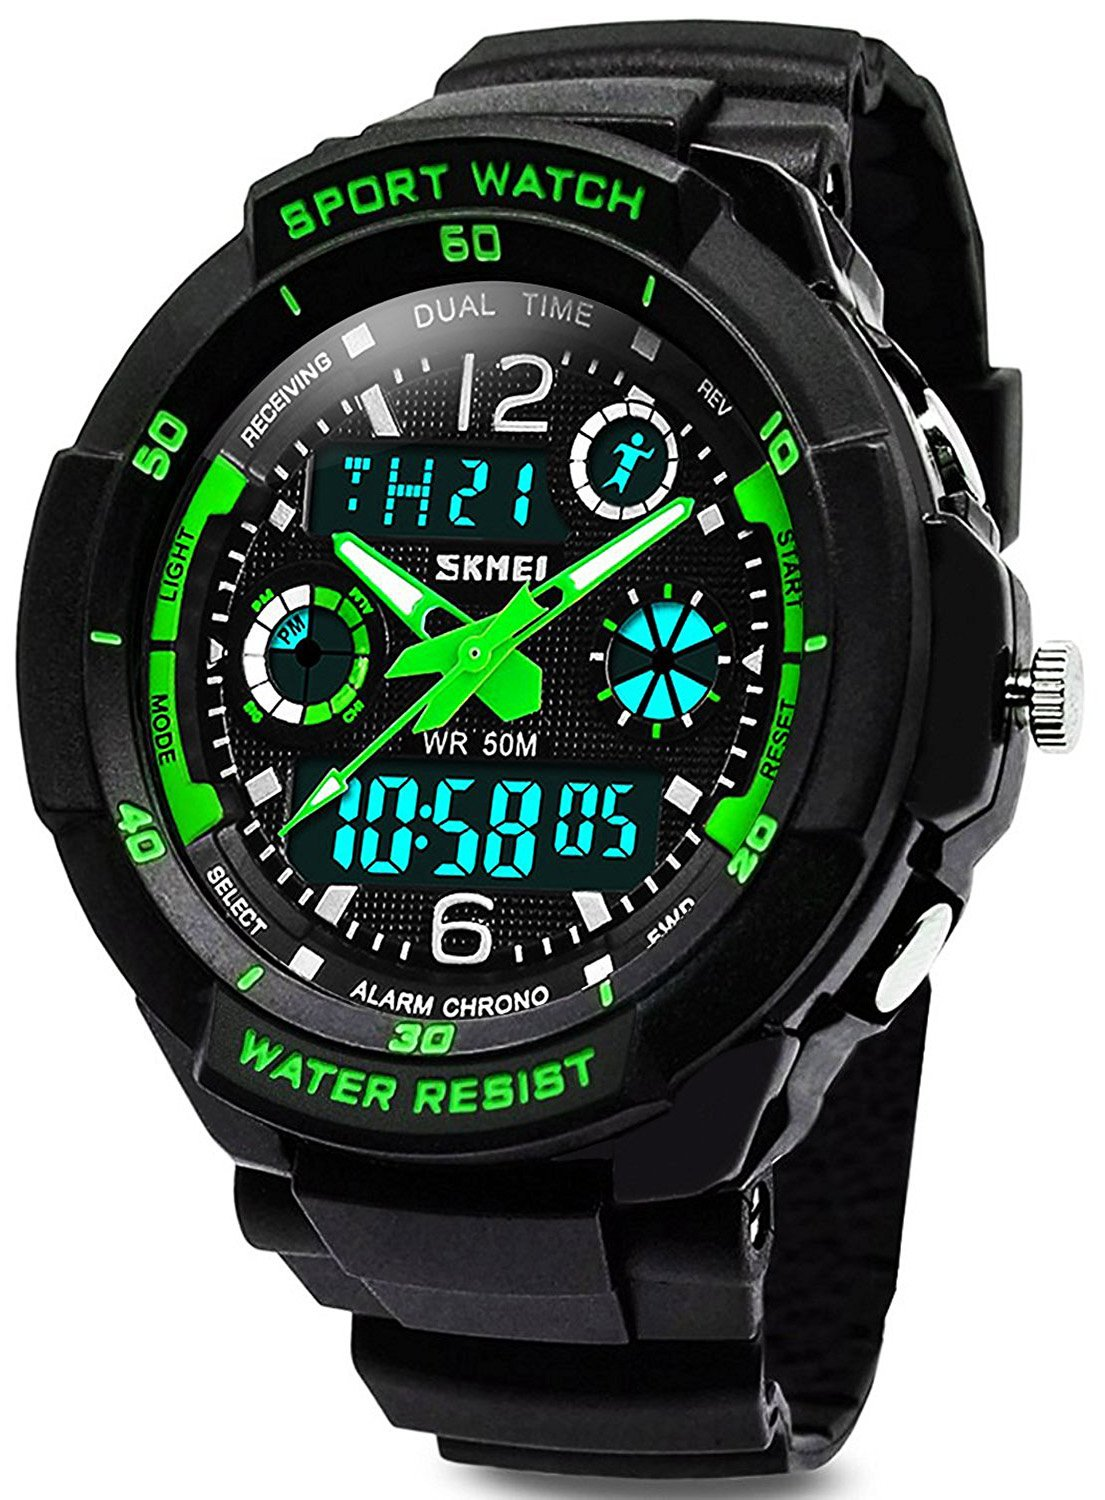 KIDPER Kids Sports Digital Watch - Boys Analog Waterproof Sport Watches with Alarm,LED Watch For Childrens